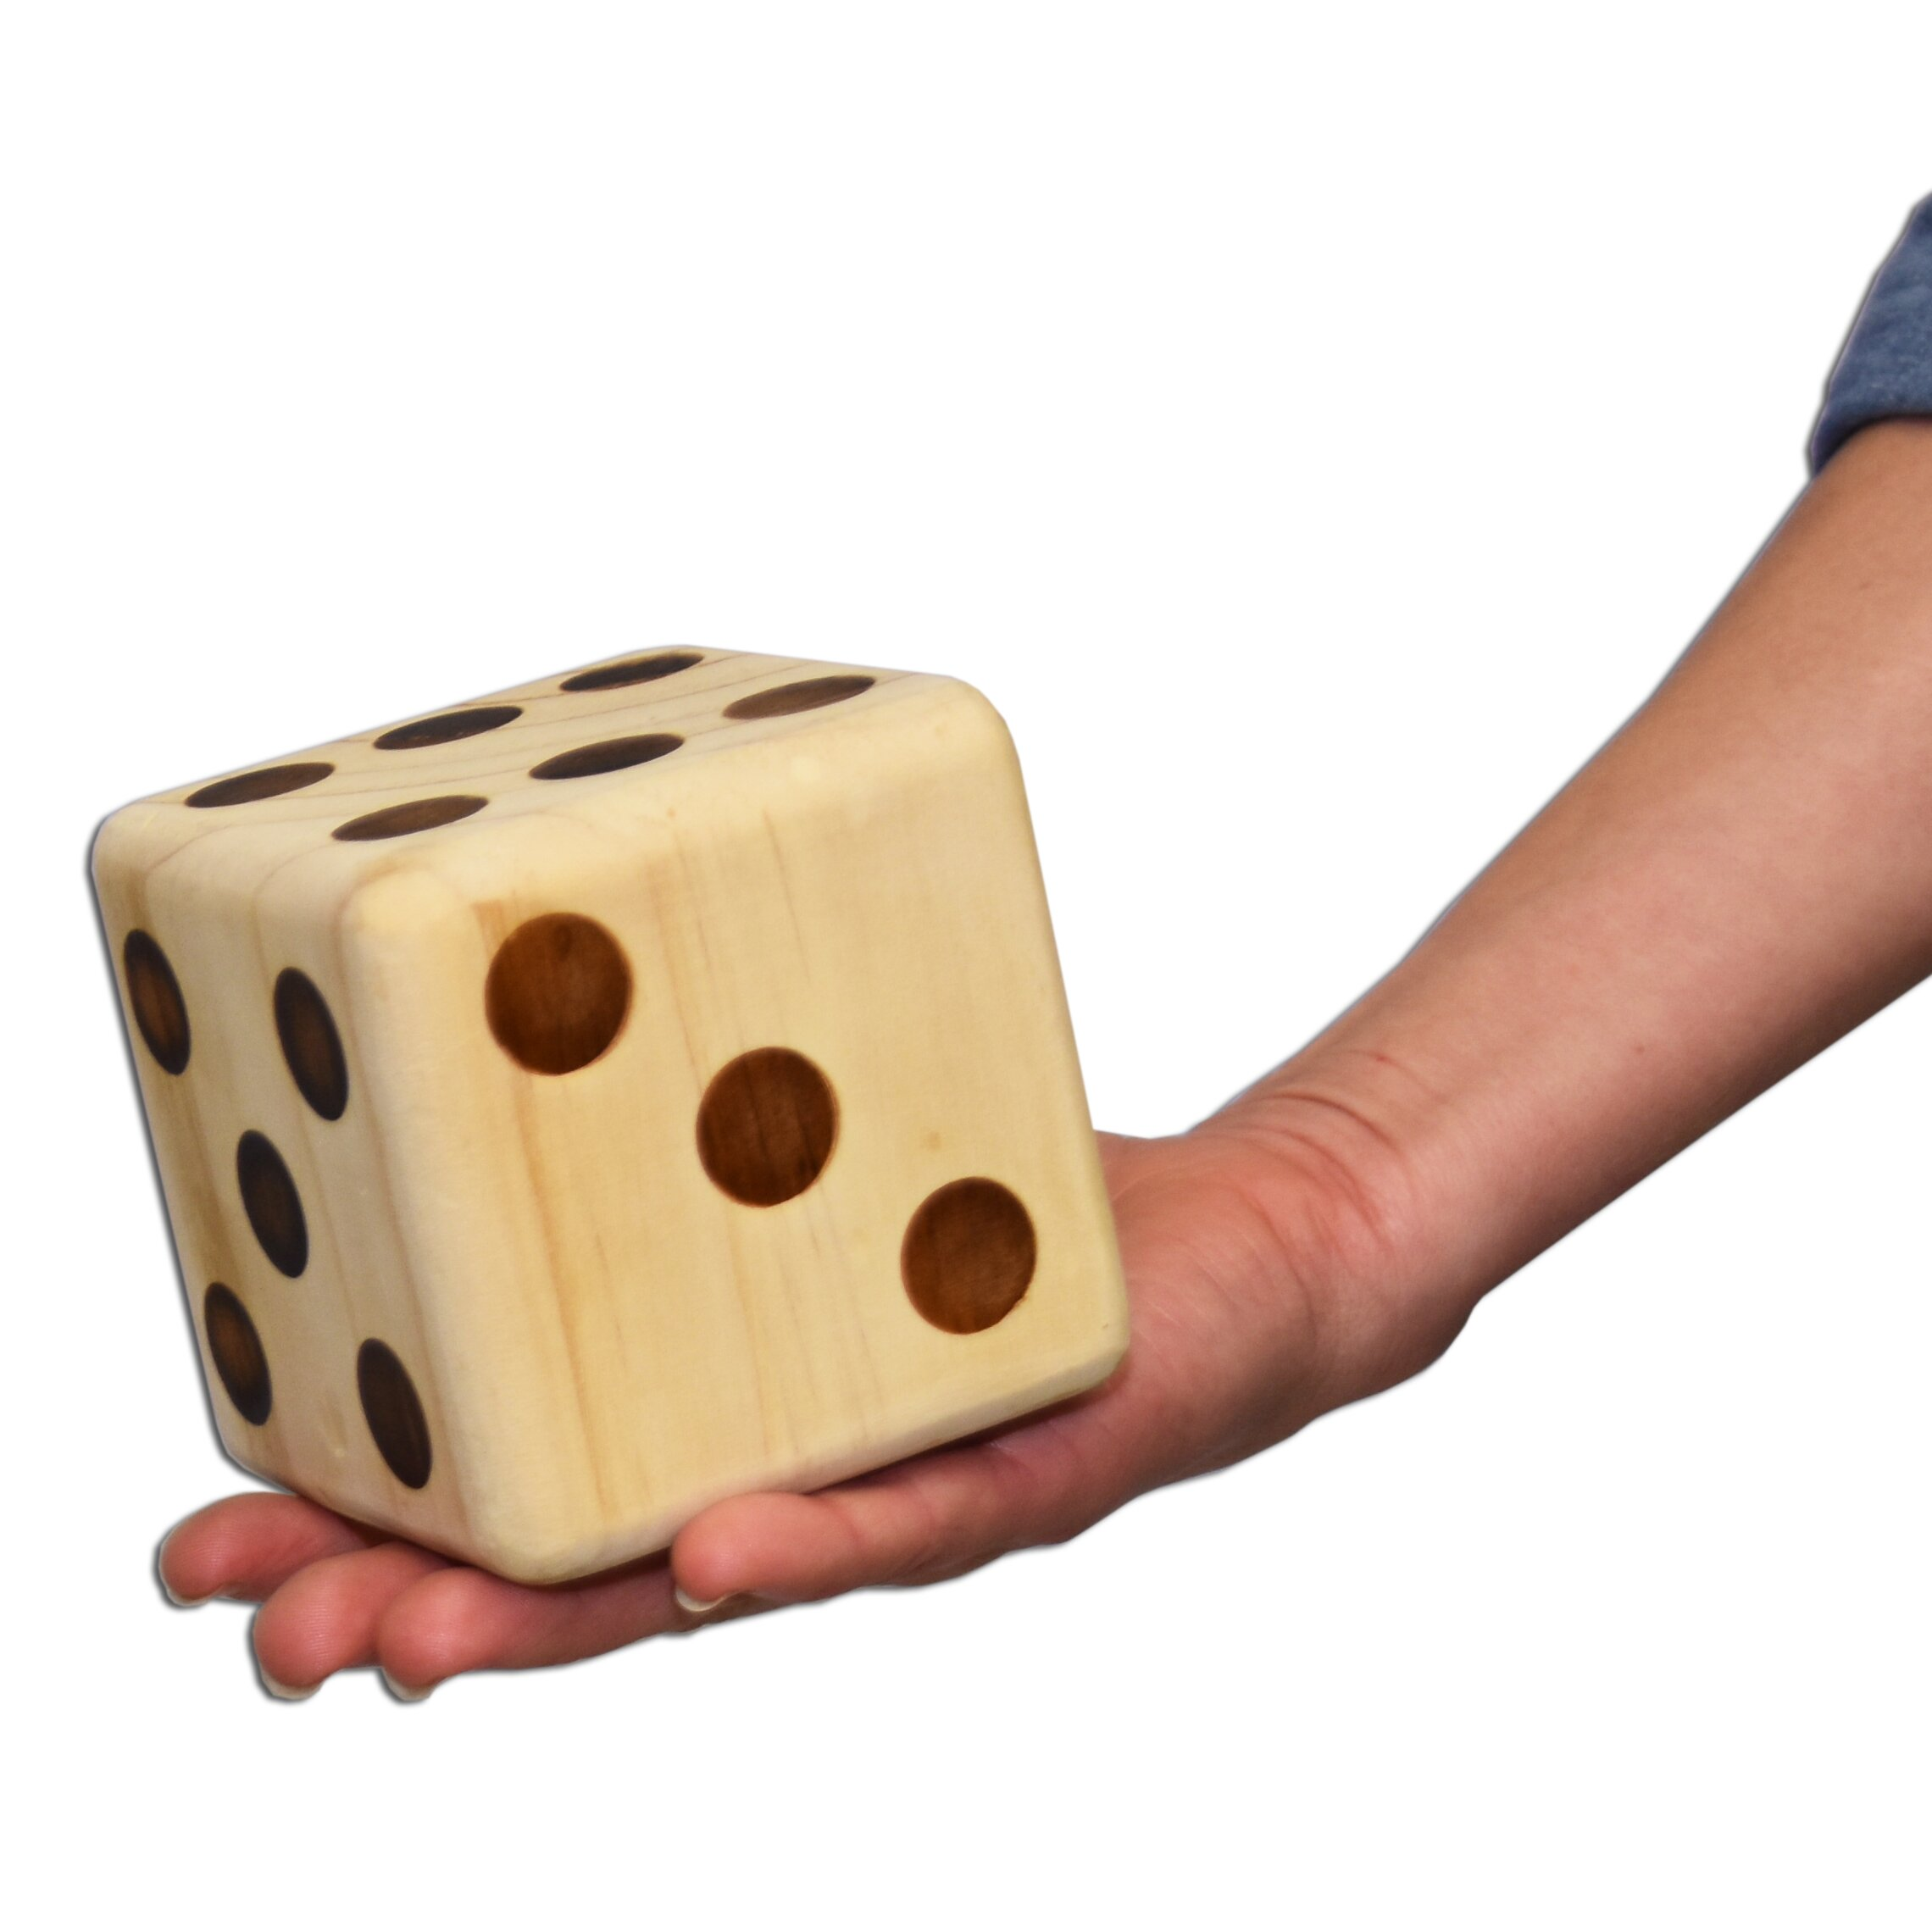 Gosports giant wooden dice wayfair